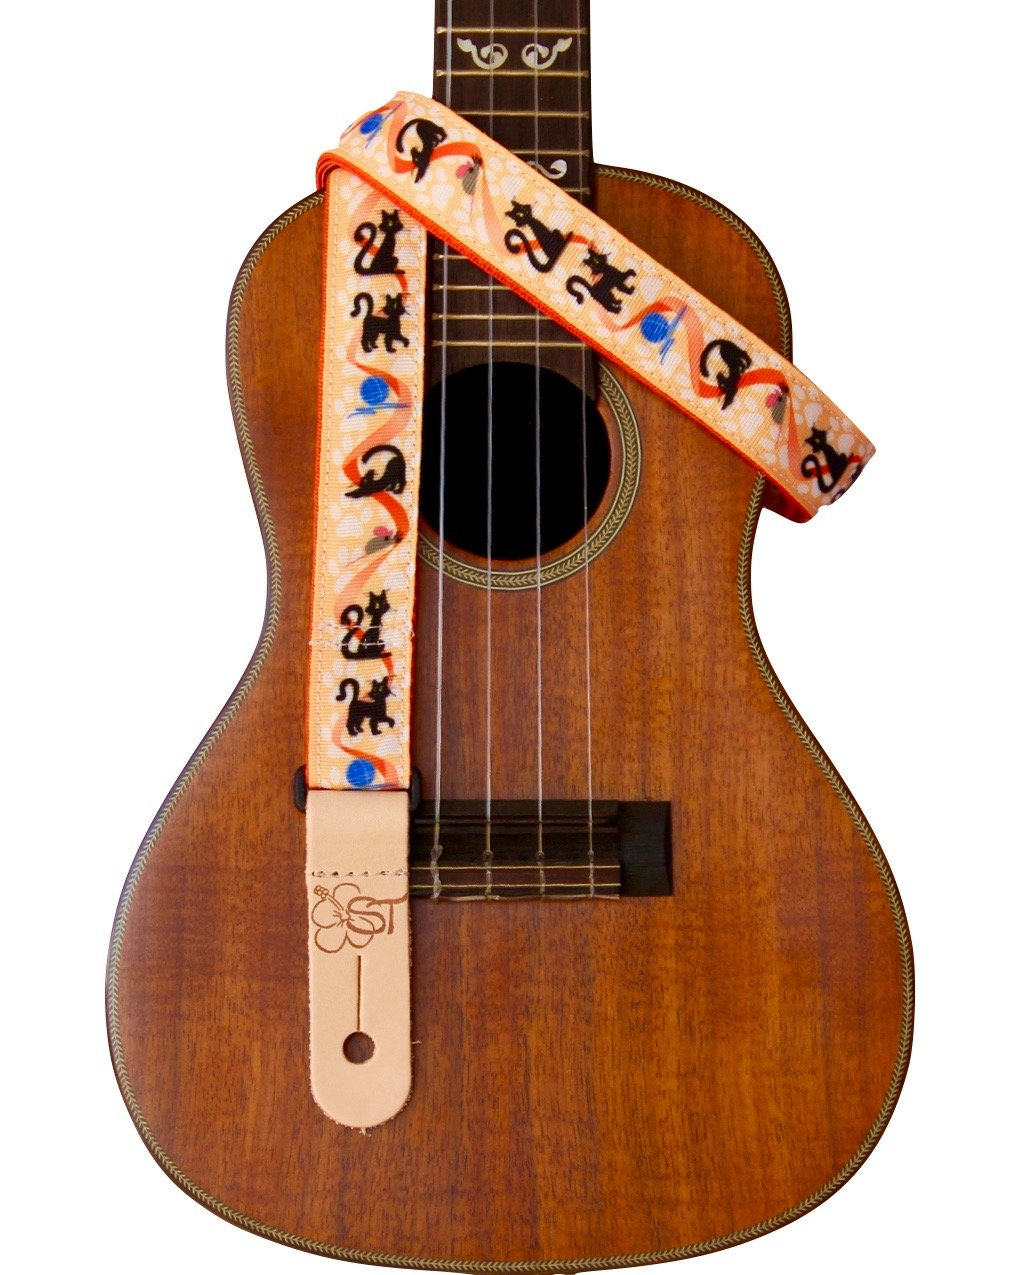 Sherrin's Threads 1 Ukulele Strap - Cats on Orange